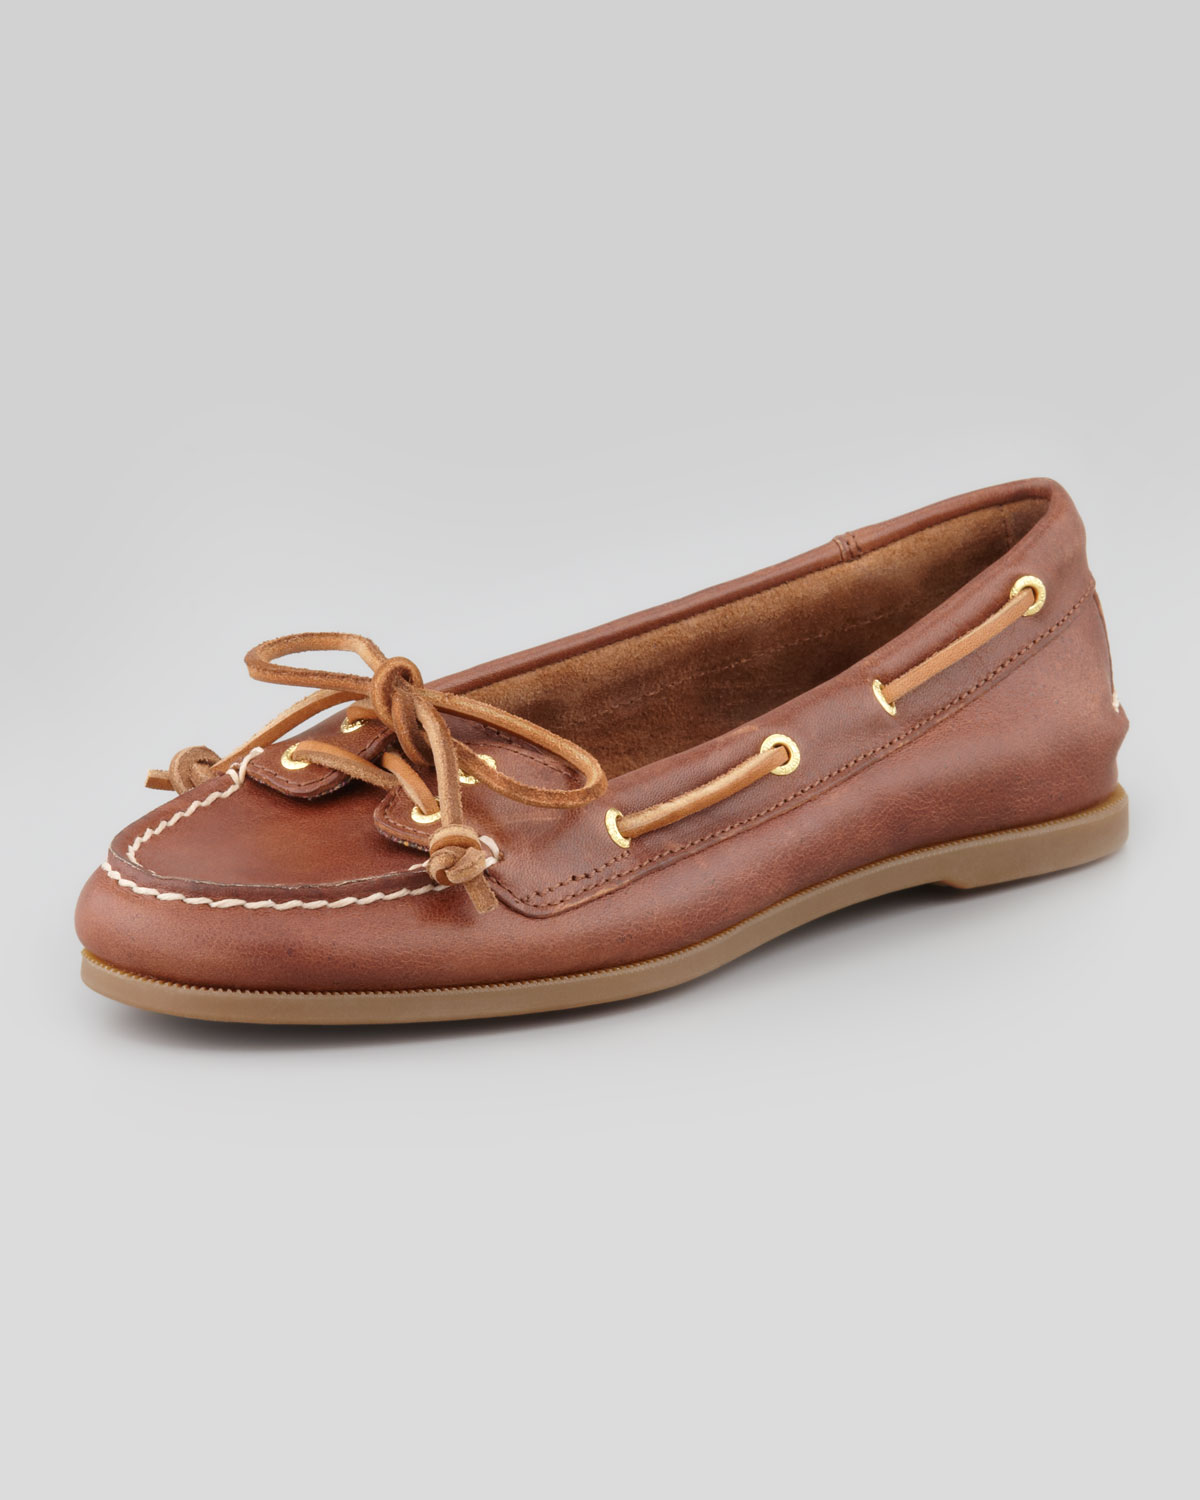 Lyst - Sperry Top-Sider Audrey Classic Leather Boat Shoe Tan in Brown 39d086a108